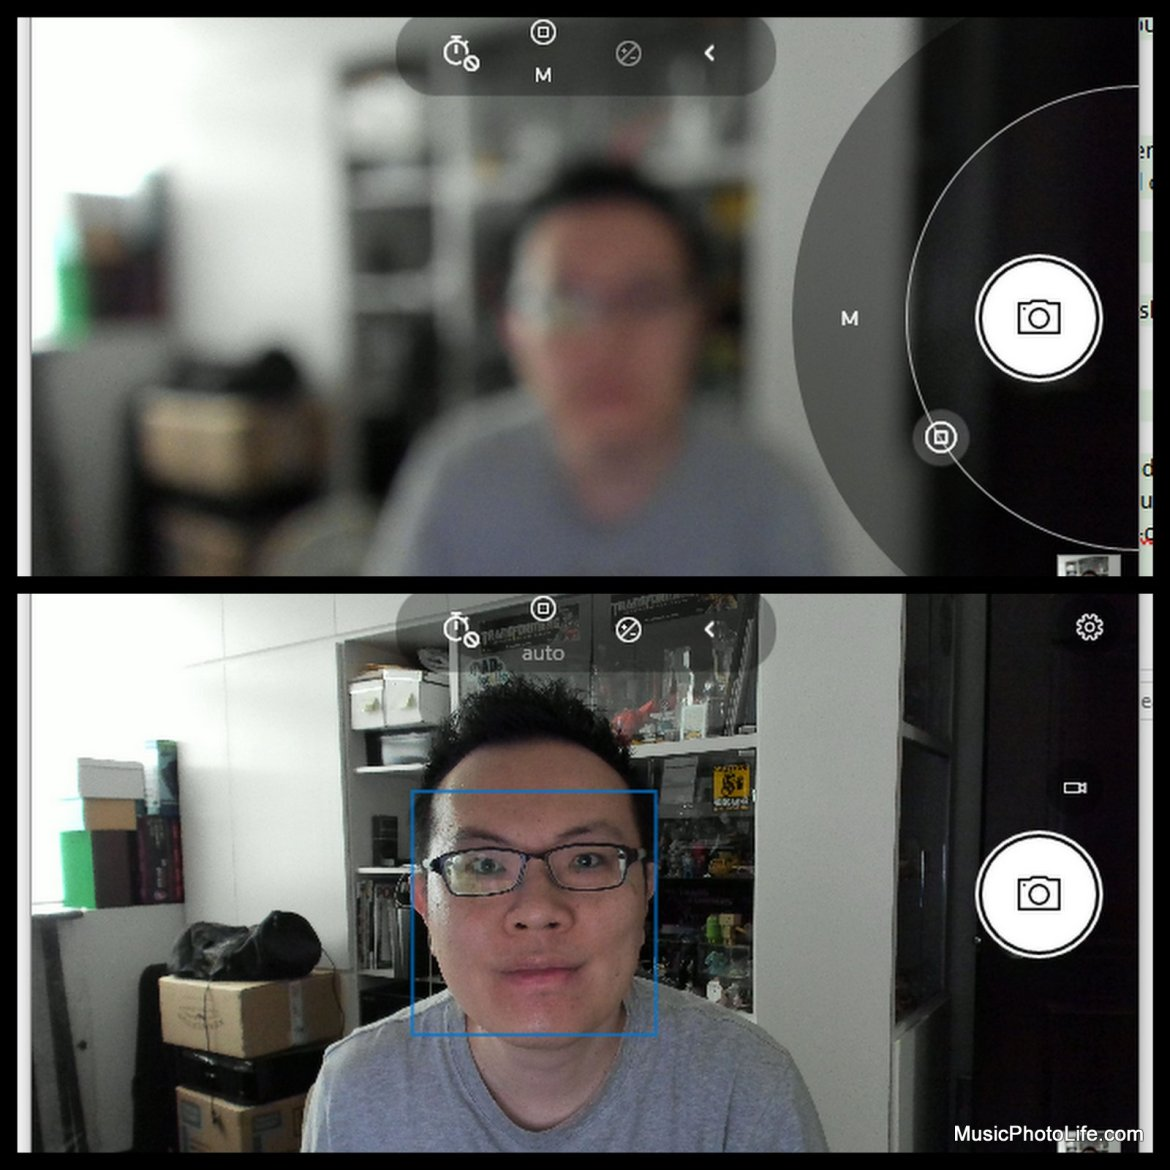 logitech BRIO face detection auto focus, or manual focus via camera app